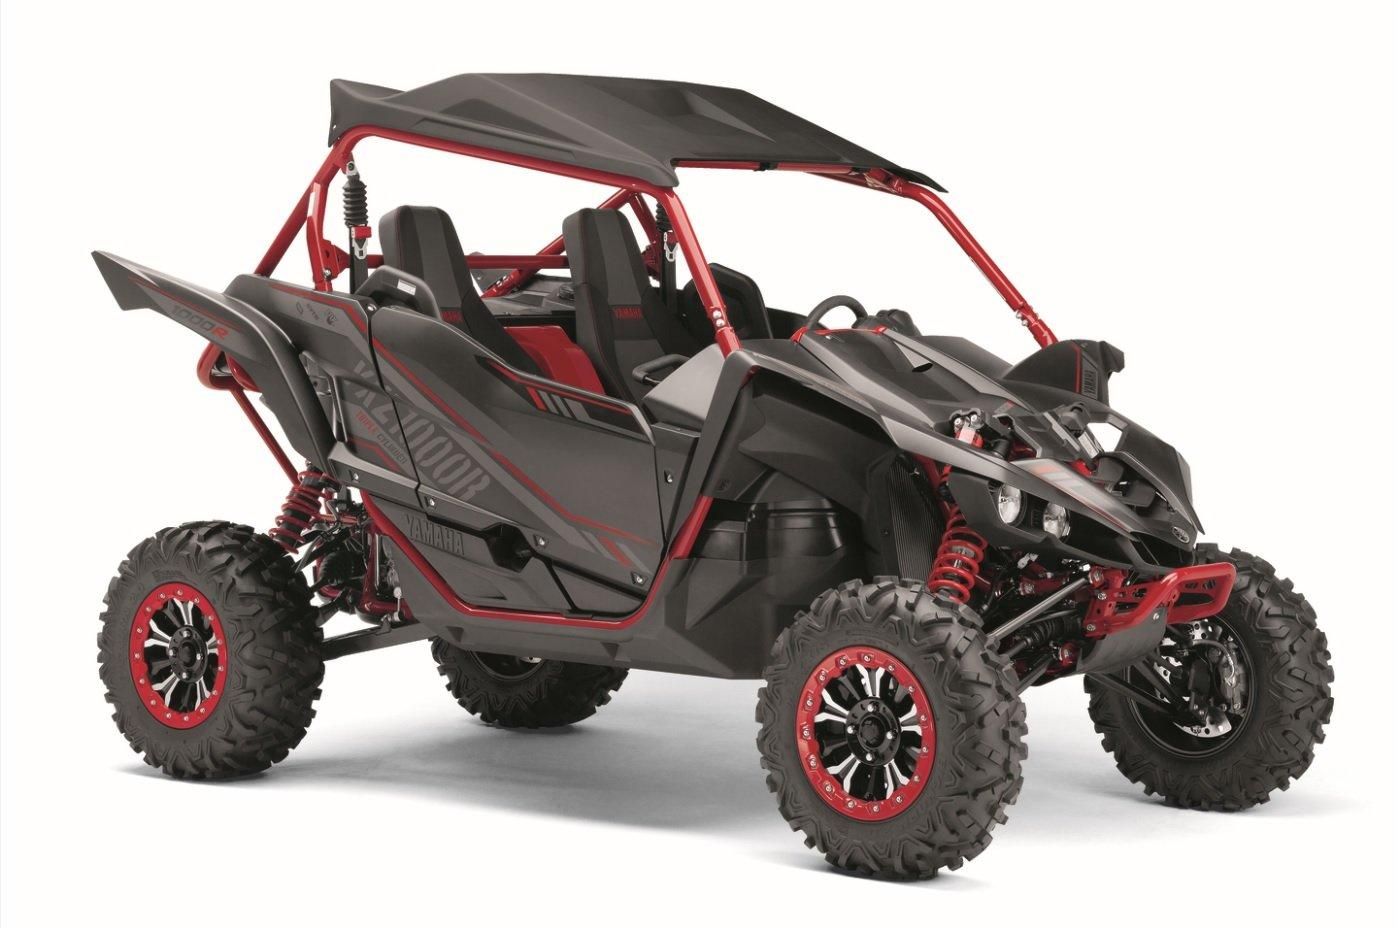 2017 yamaha yxz1000r arriving at dealers new kodiak 700 for Yamaha kodiak 700 top speed